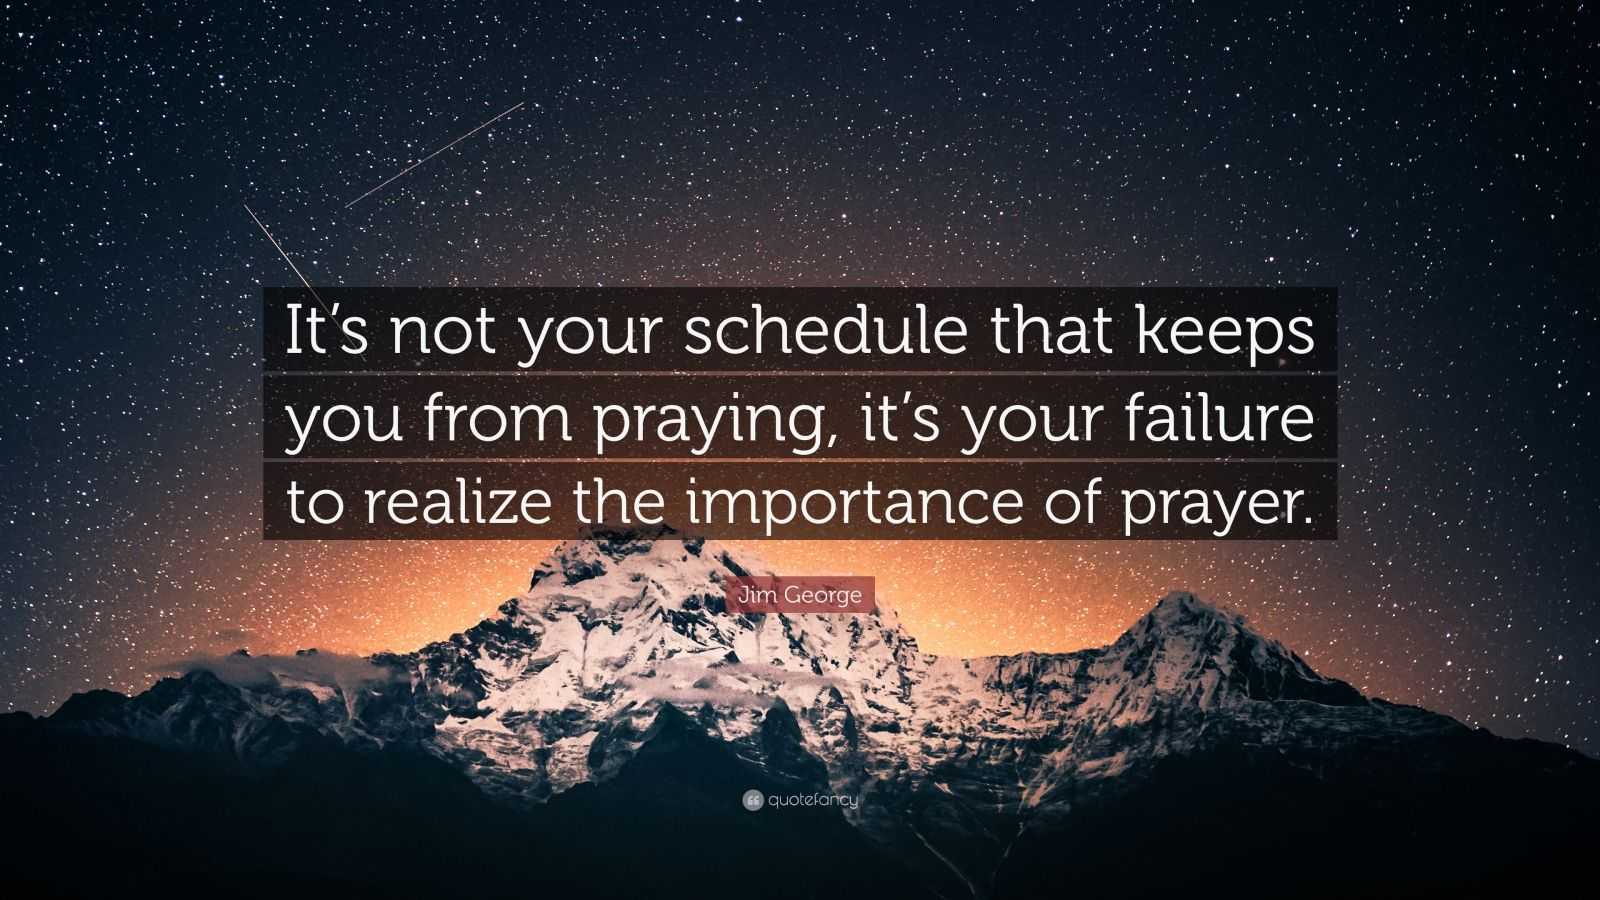 """Jim George Quote: """"It's not your schedule that keeps you from praying, it's your failure to realize the importance of prayer."""""""